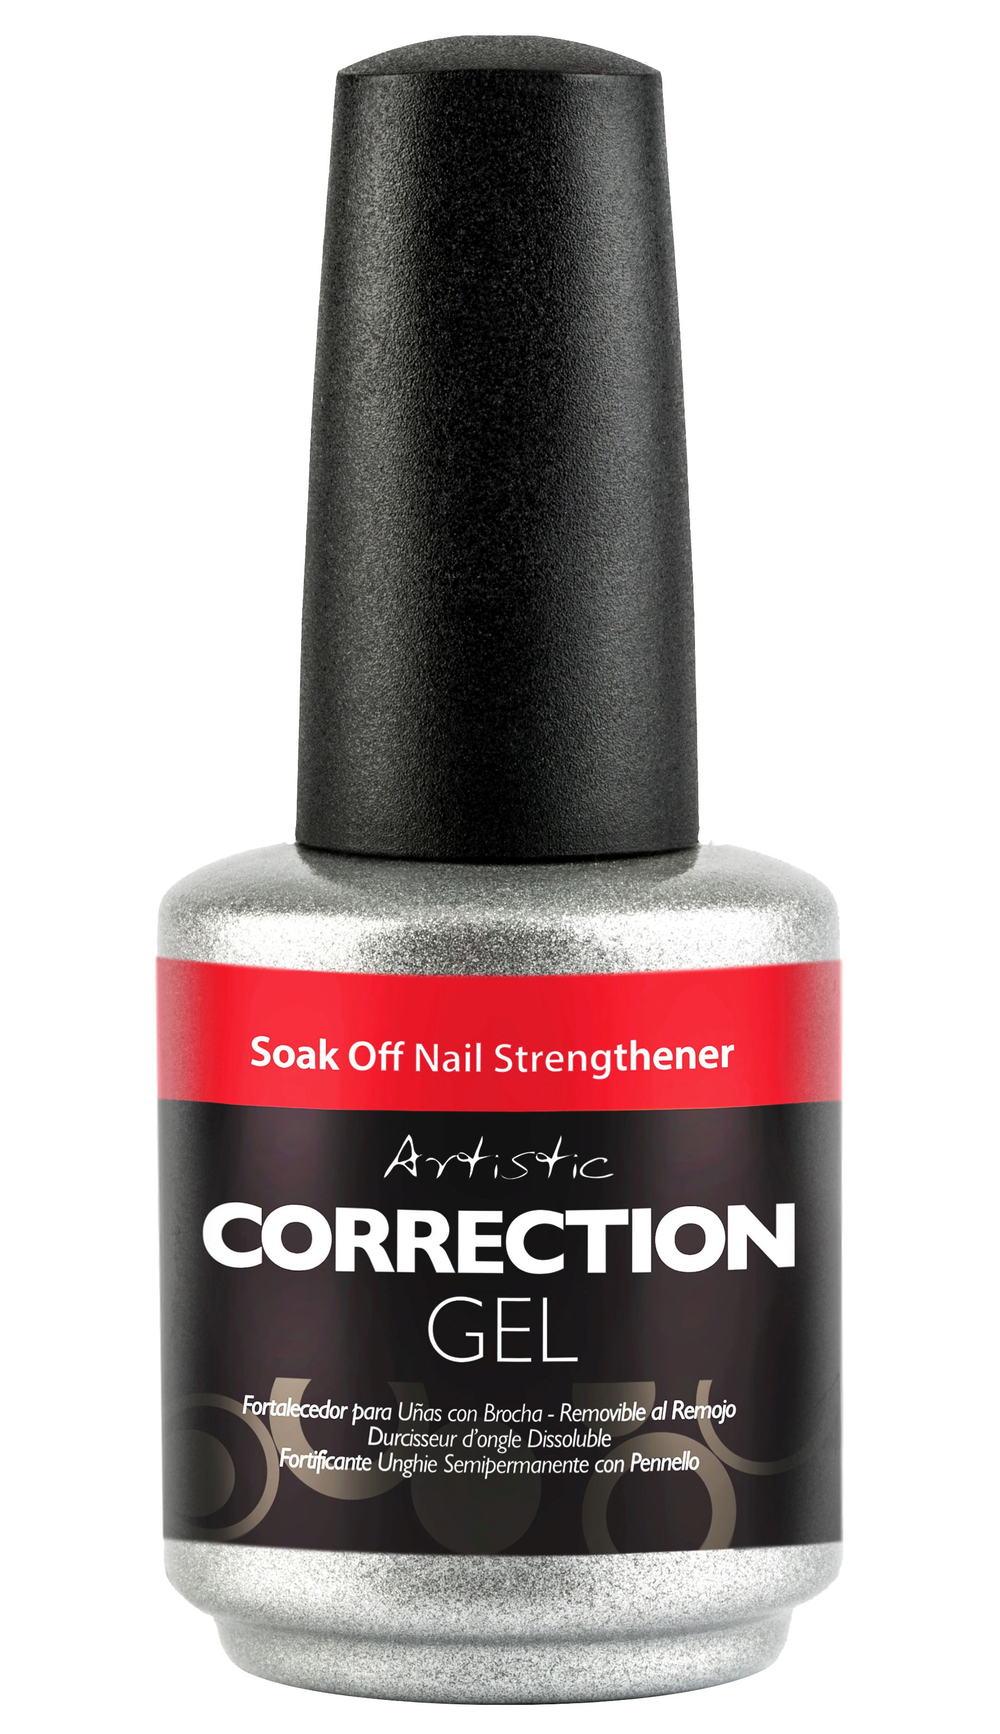 """<p>Artistic Nail Design Correction Gel Soak Off Nail Strengthener</p> <p><a href=""""http://www.artisticnaildesign.com"""">www.artisticnaildesign.com </a></p>"""